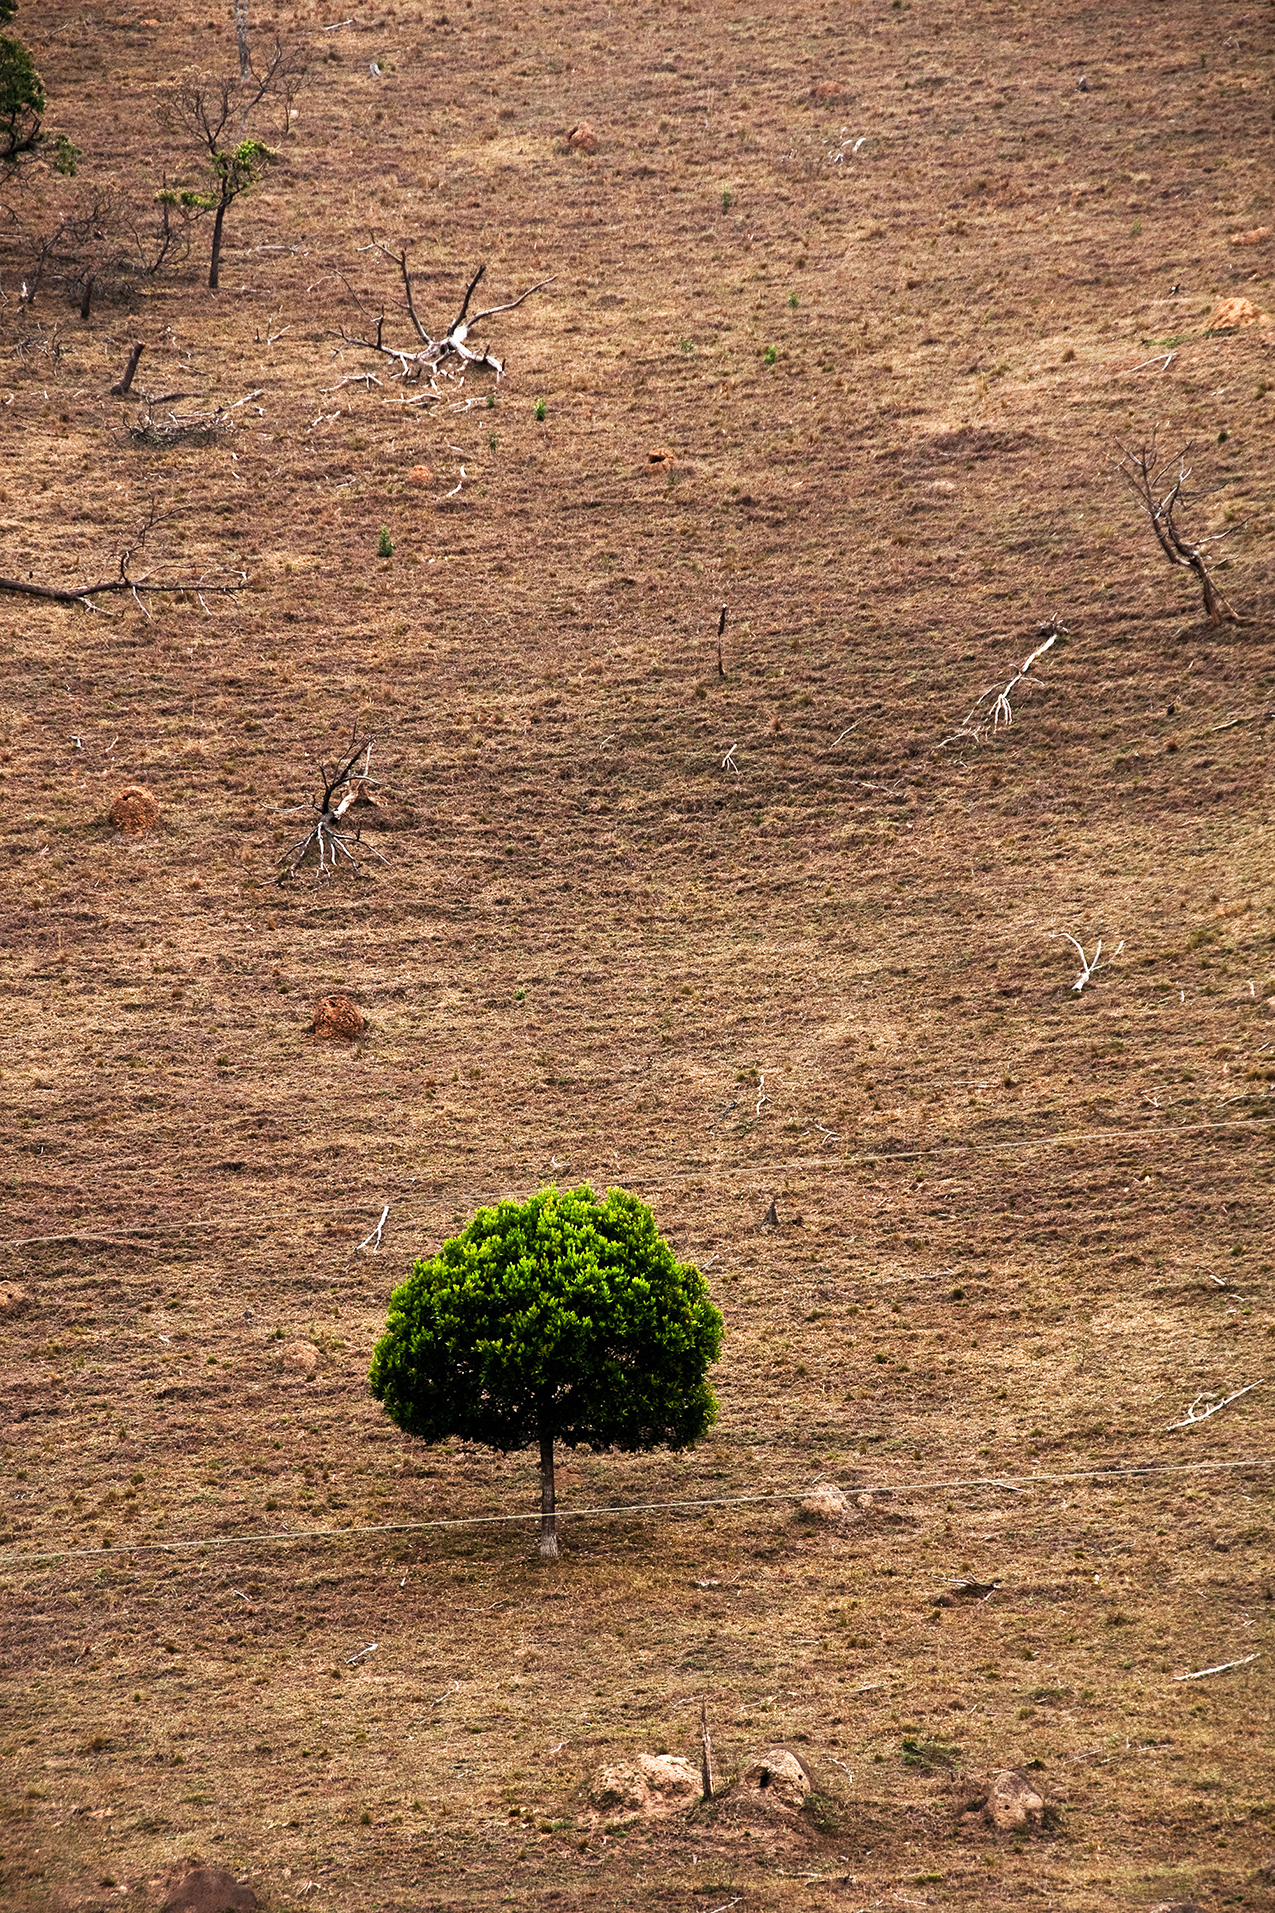 One Tree Left by Guilherme Bergamini: photo of a solitary green tree surrounded by dry desolate landscape